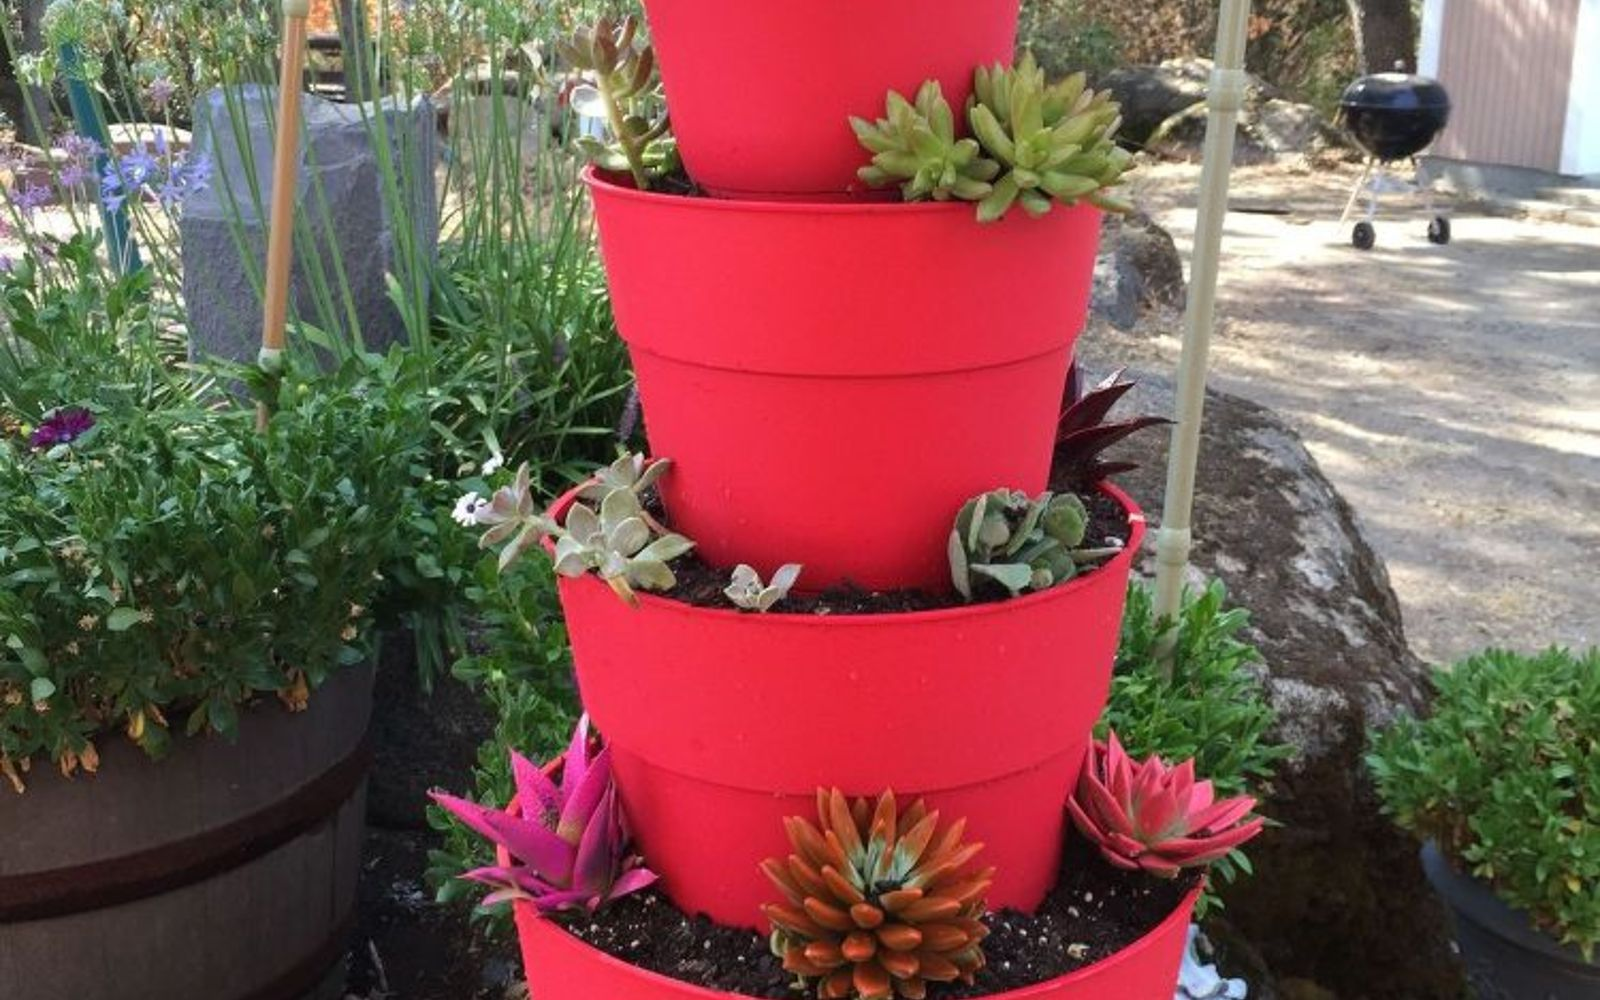 Make a tower of plants to maximize space